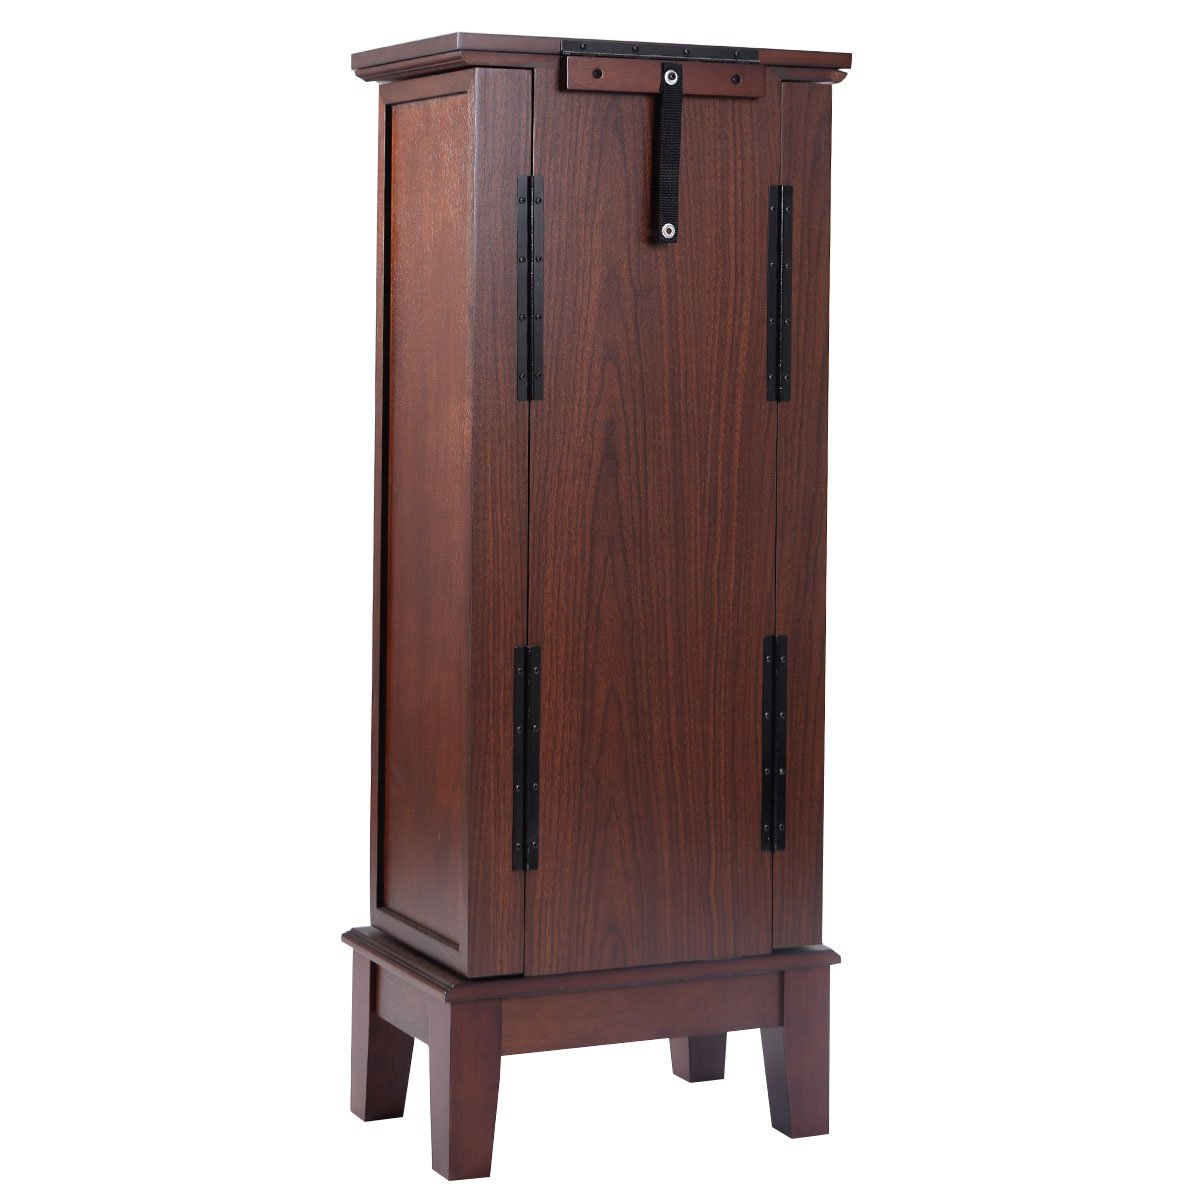 Giantex Wood Jewelry Cabinet Armoire Storage Box Chest Stand Organizer Necklace by Giantex (Image #4)